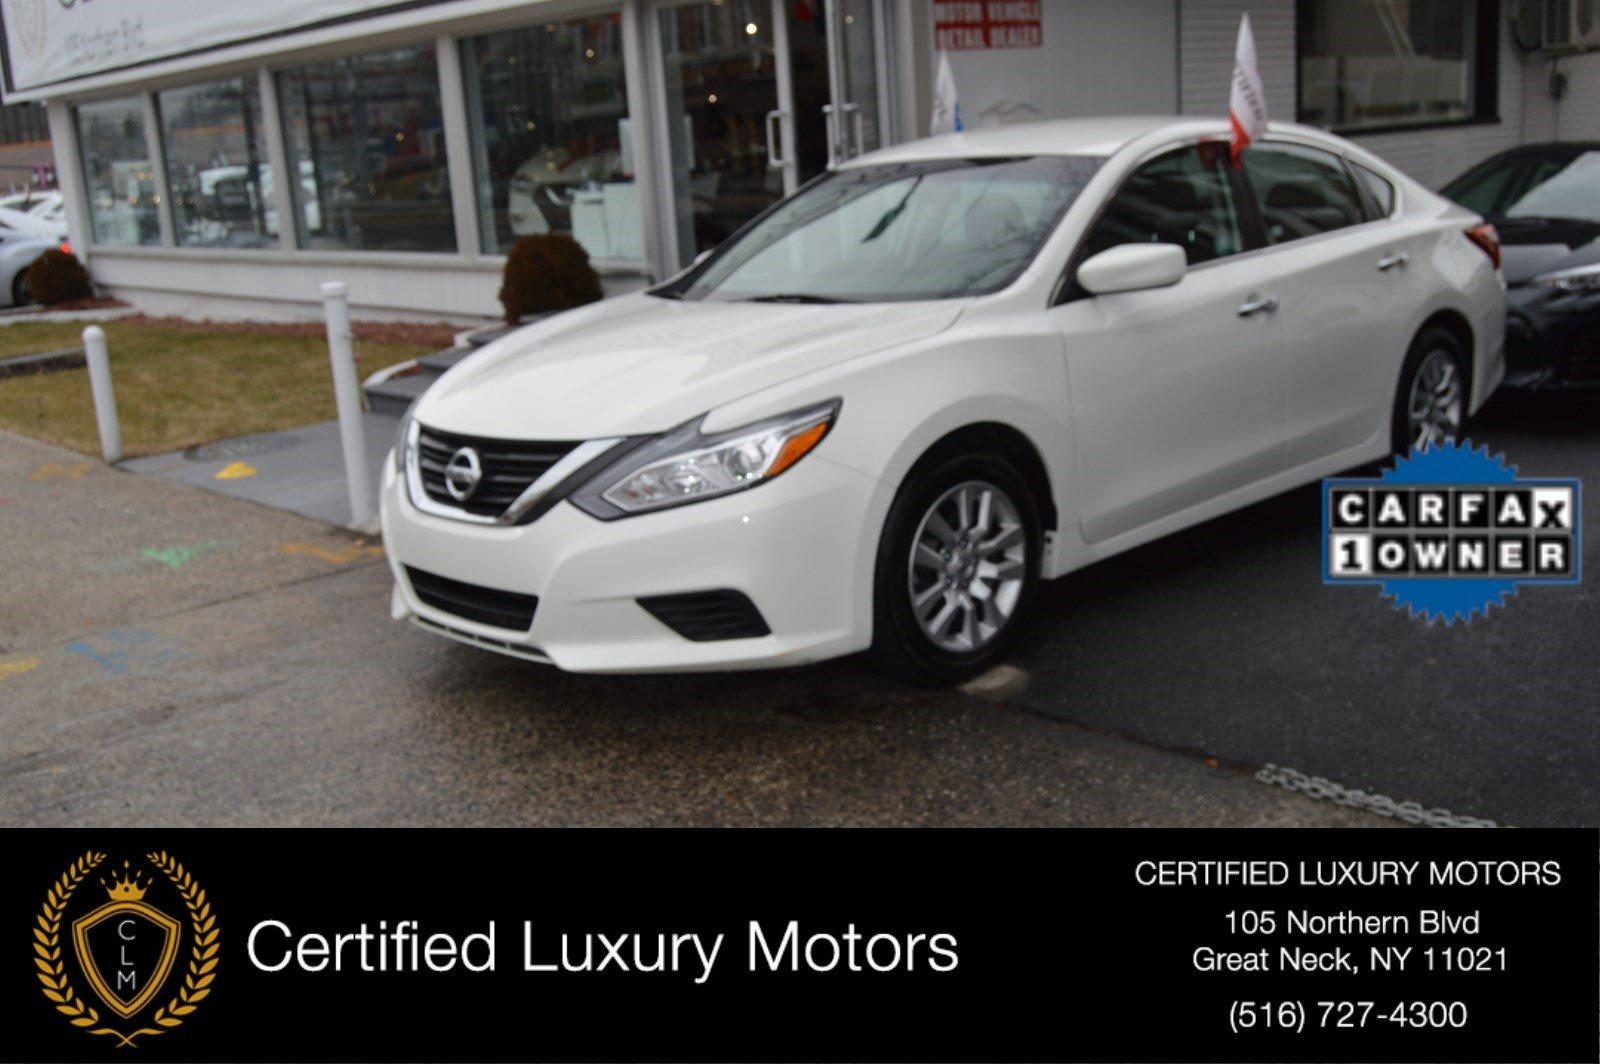 2016 nissan sentra sv stock 6234 for sale near great On certified luxury motors great neck ny